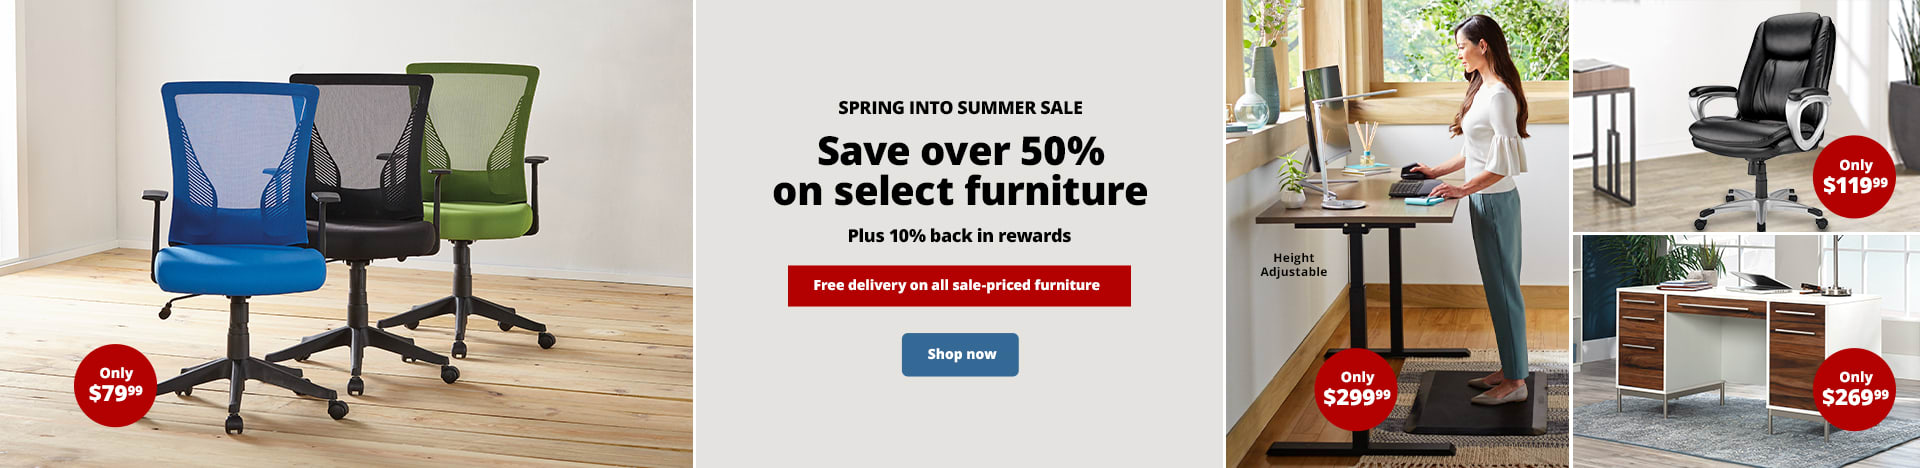 Spring into Summer Sale. Save over 50% on select furniture. Plus 10% back in rewards. Free delivery on all sale-priced furniture